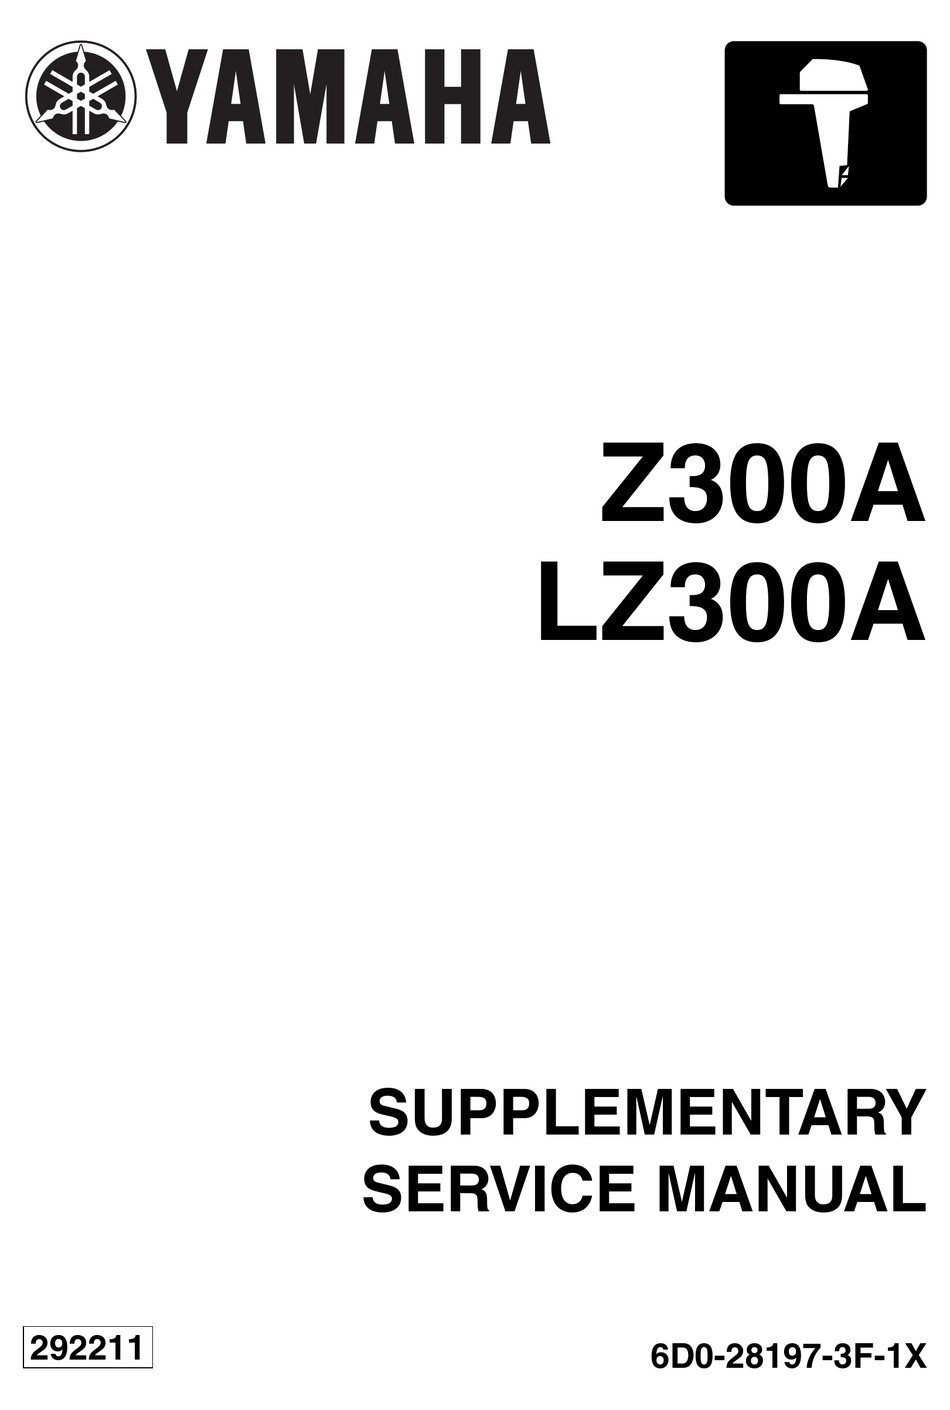 YAMAHA Z300A SUPPLEMENTARY SERVICE MANUAL Pdf Download